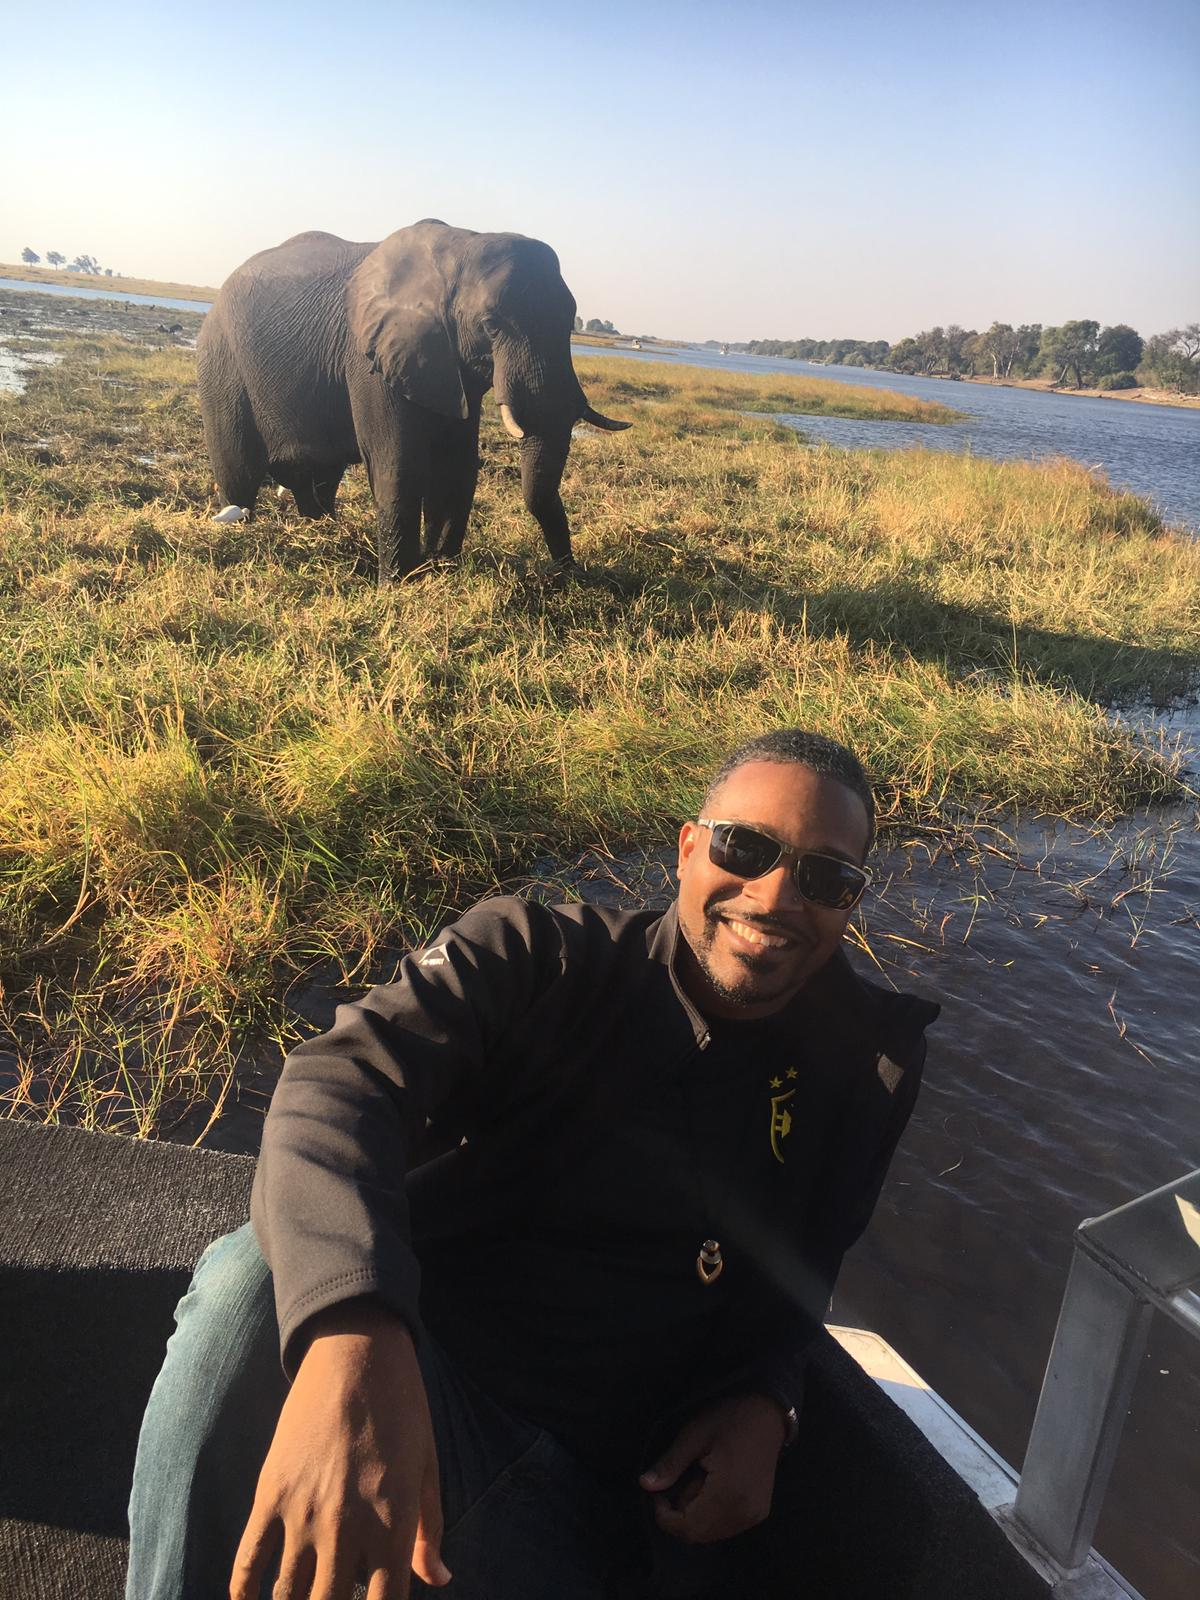 Associate Professor Cameron Denson during a July 2019 trip to Botswana